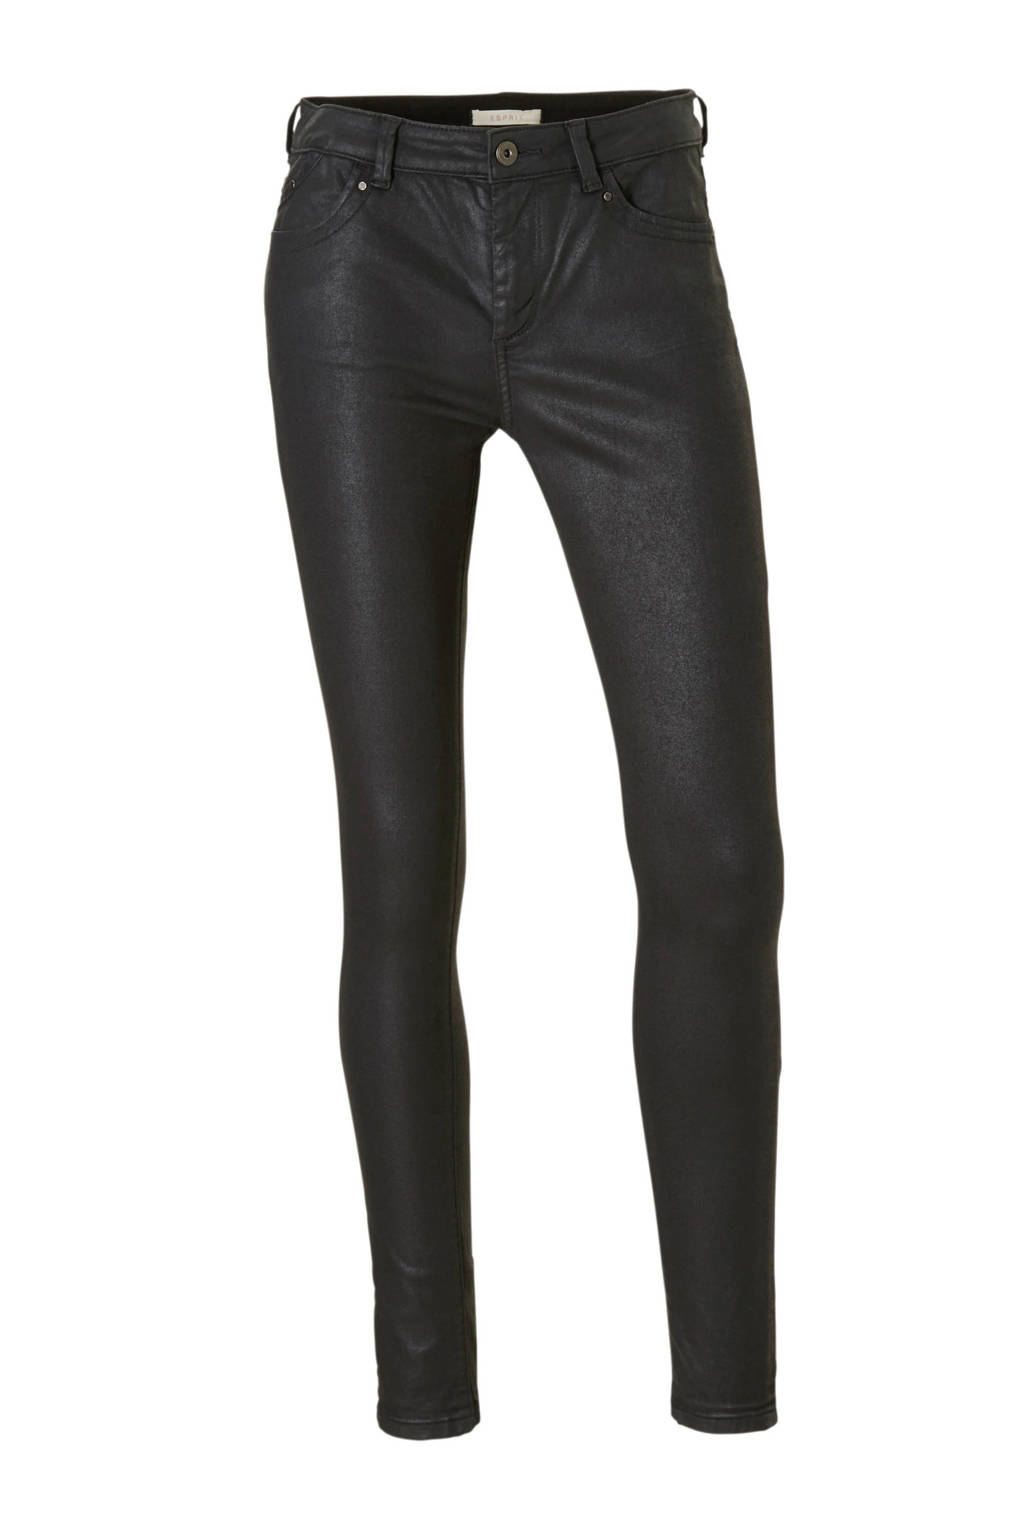 ESPRIT Women Casual coated skinny fit broek, Zwart